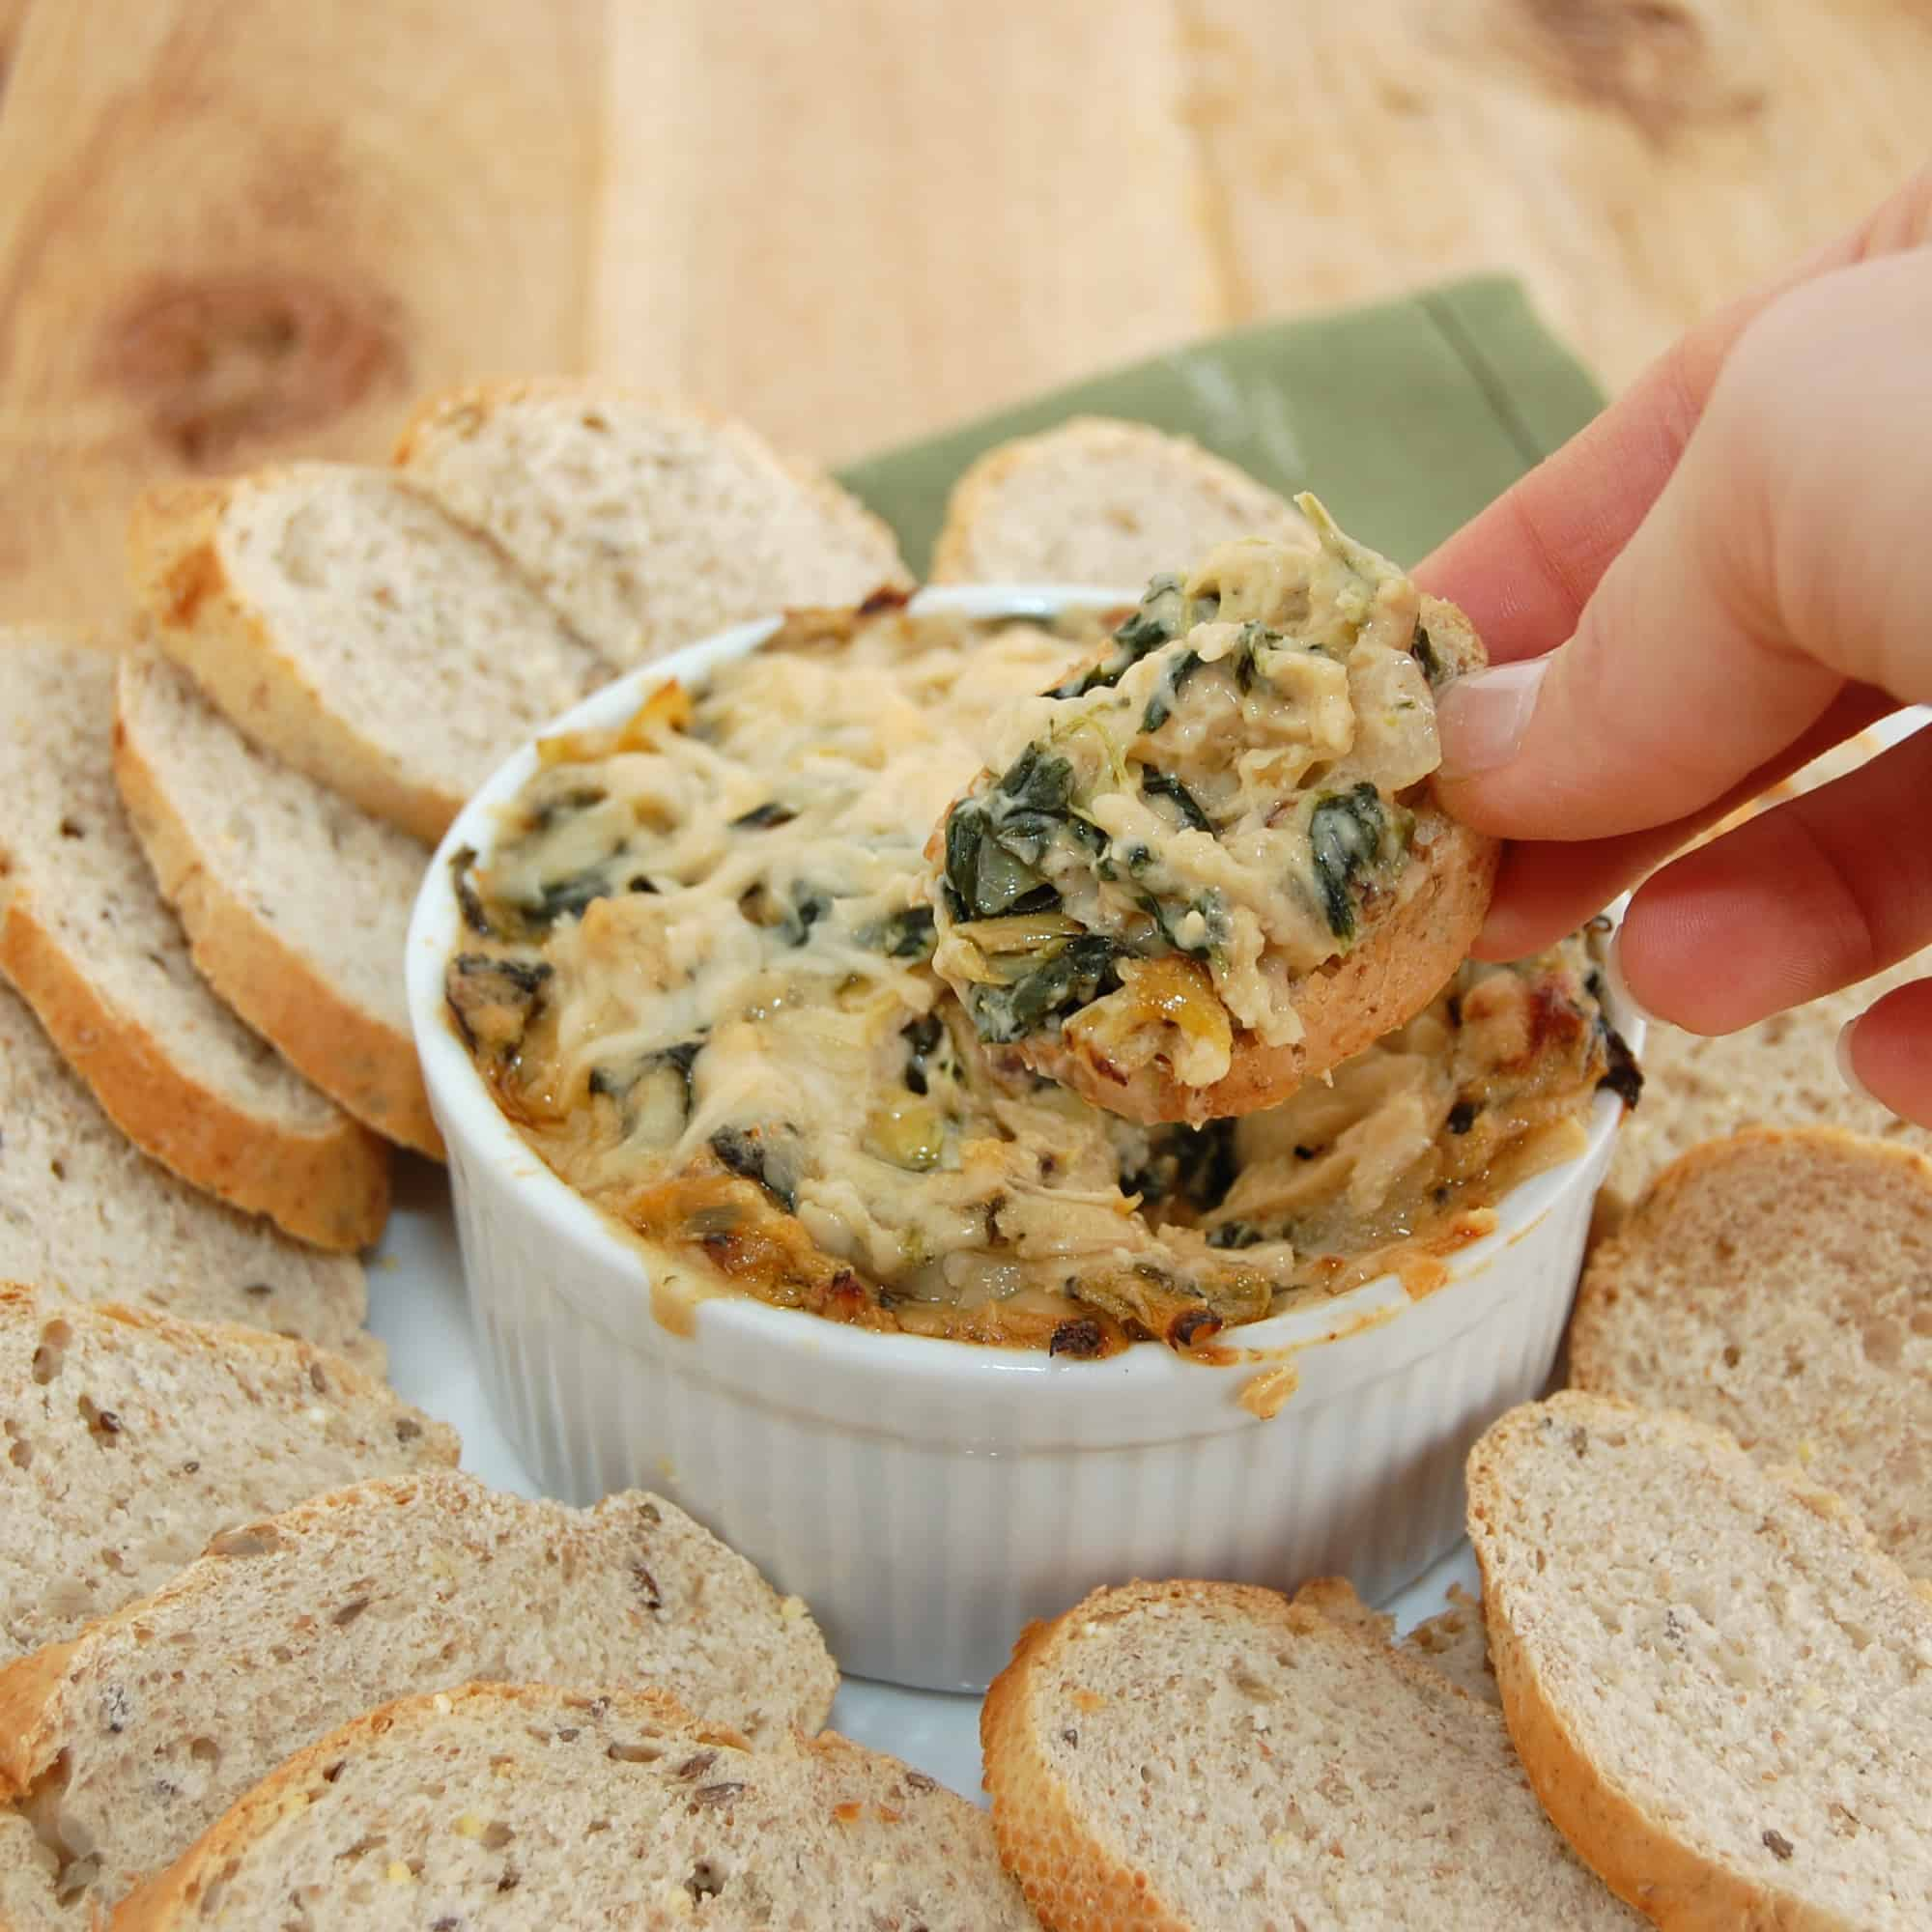 dipping bread into spinach dip